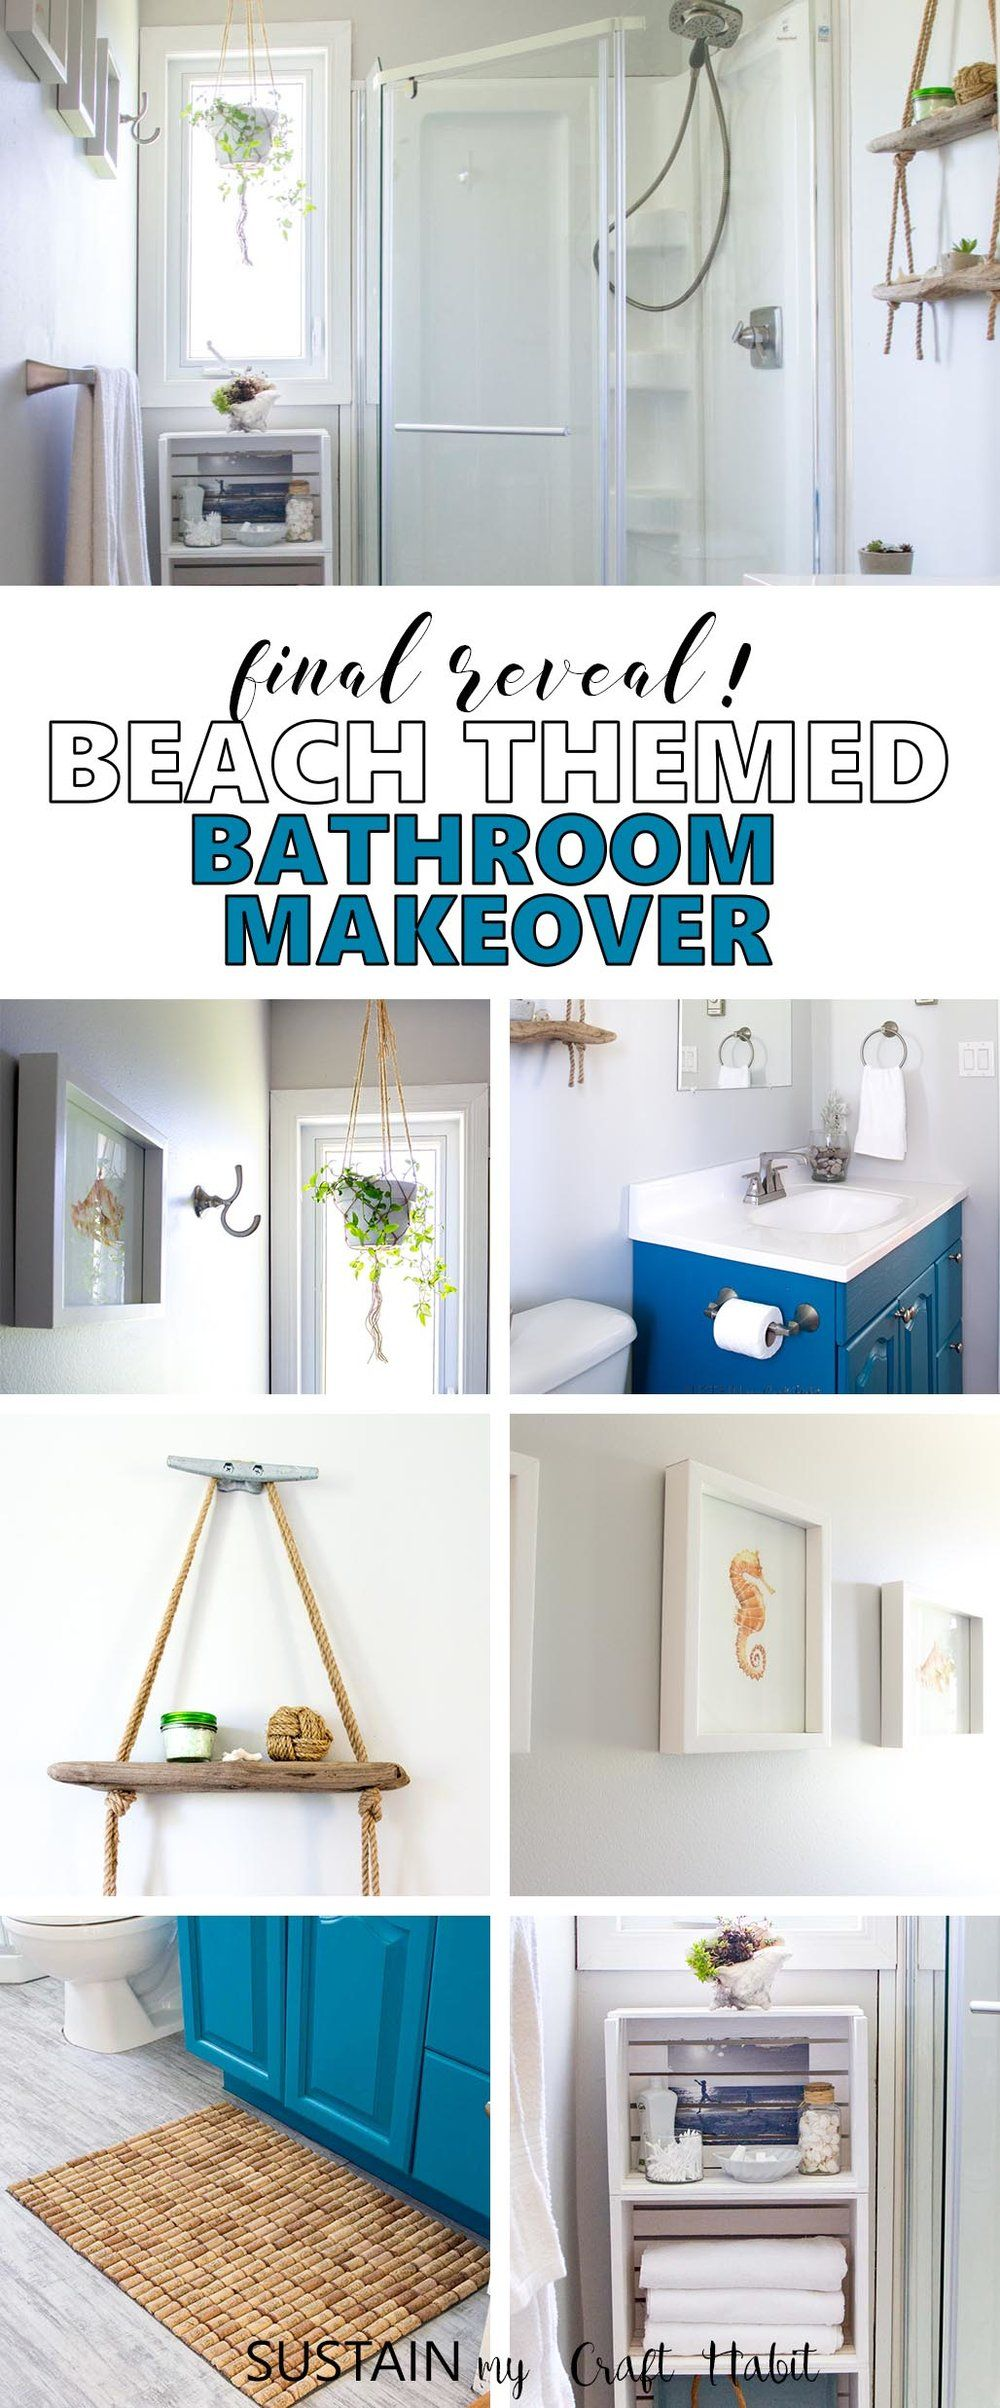 Beach Themed Bathroom Final Reveal | Beach themed bathrooms, Coastal ...